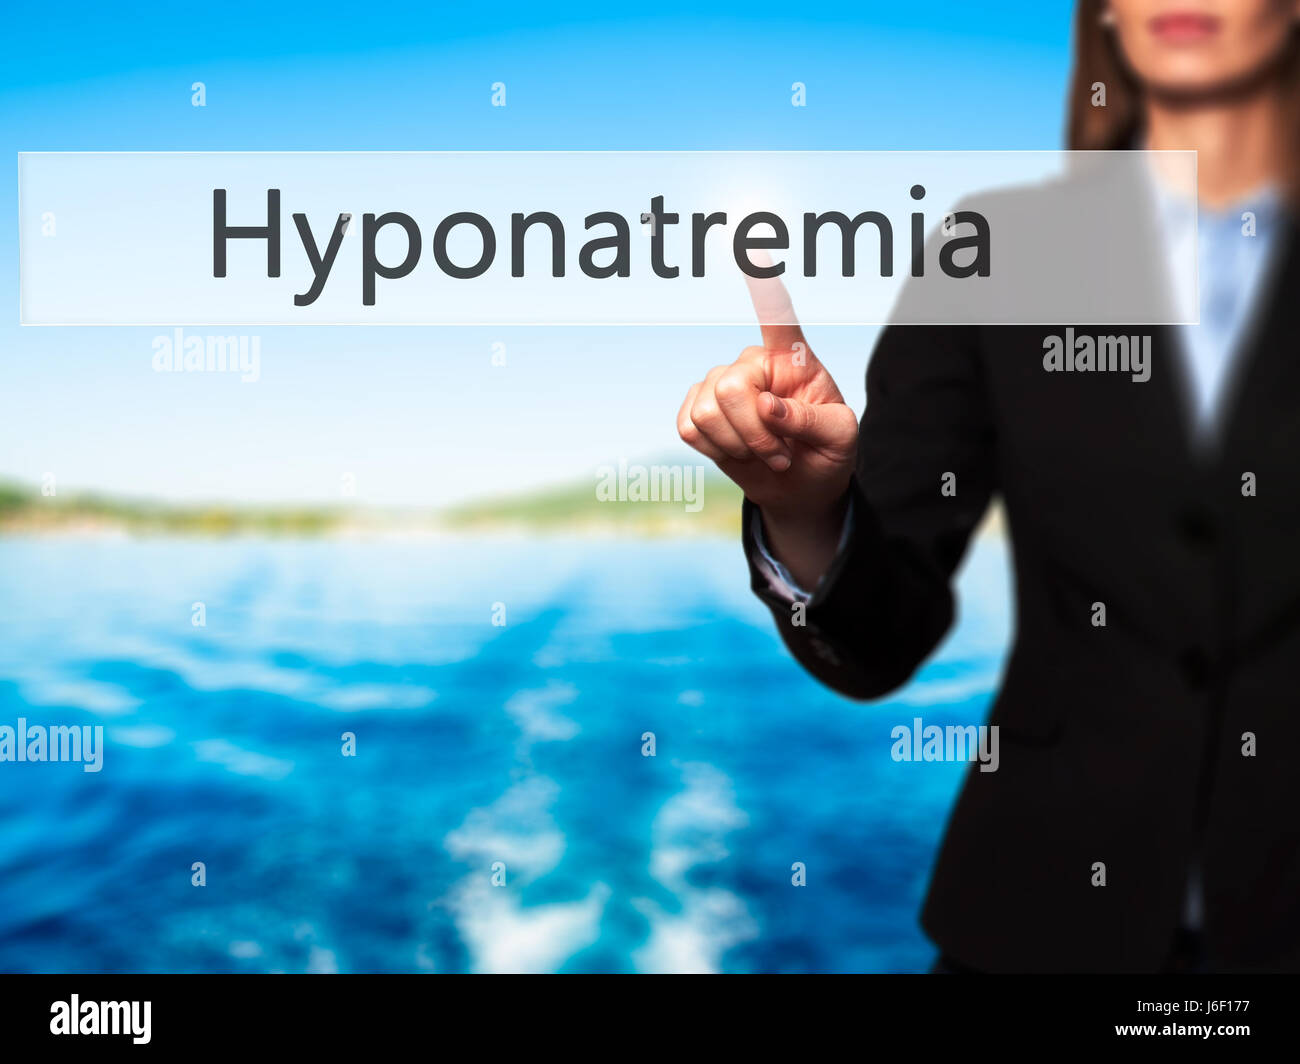 Hyponatremia - Businesswoman hand pressing button on touch screen interface. Business, technology, internet concept. - Stock Image